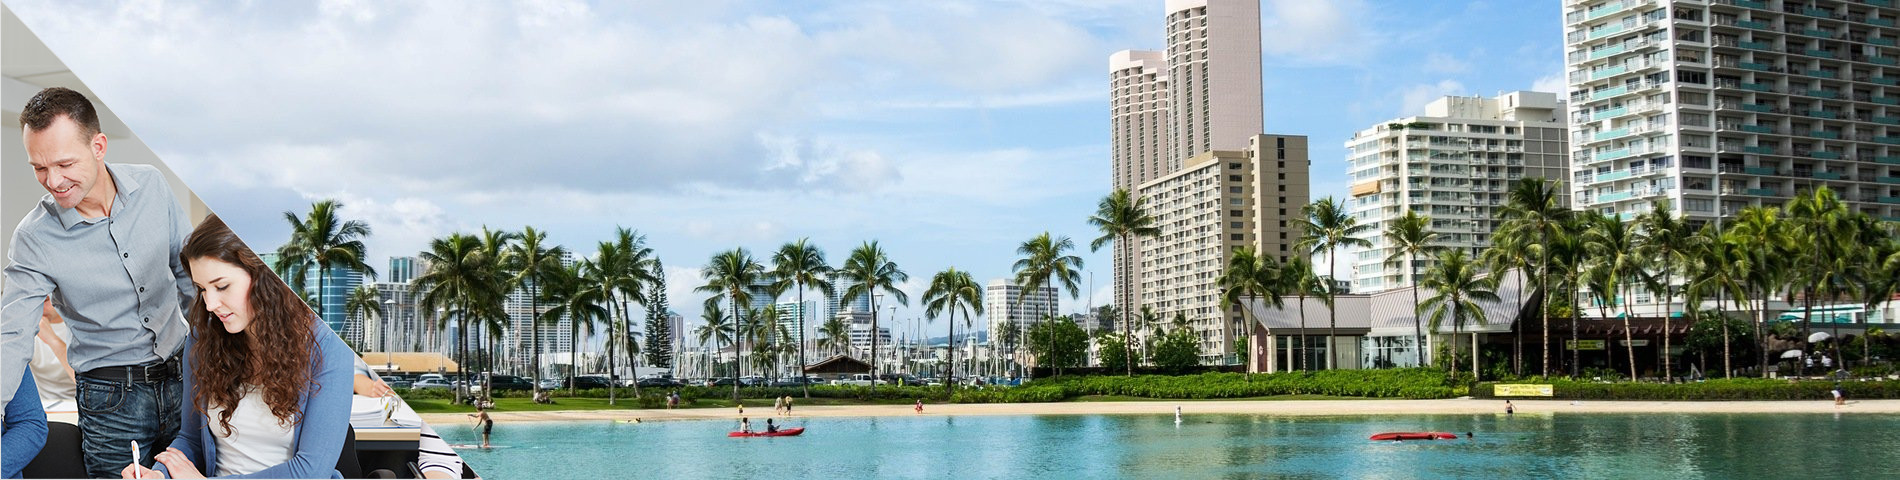 Honolulu - Combi: Groupe + particuliers